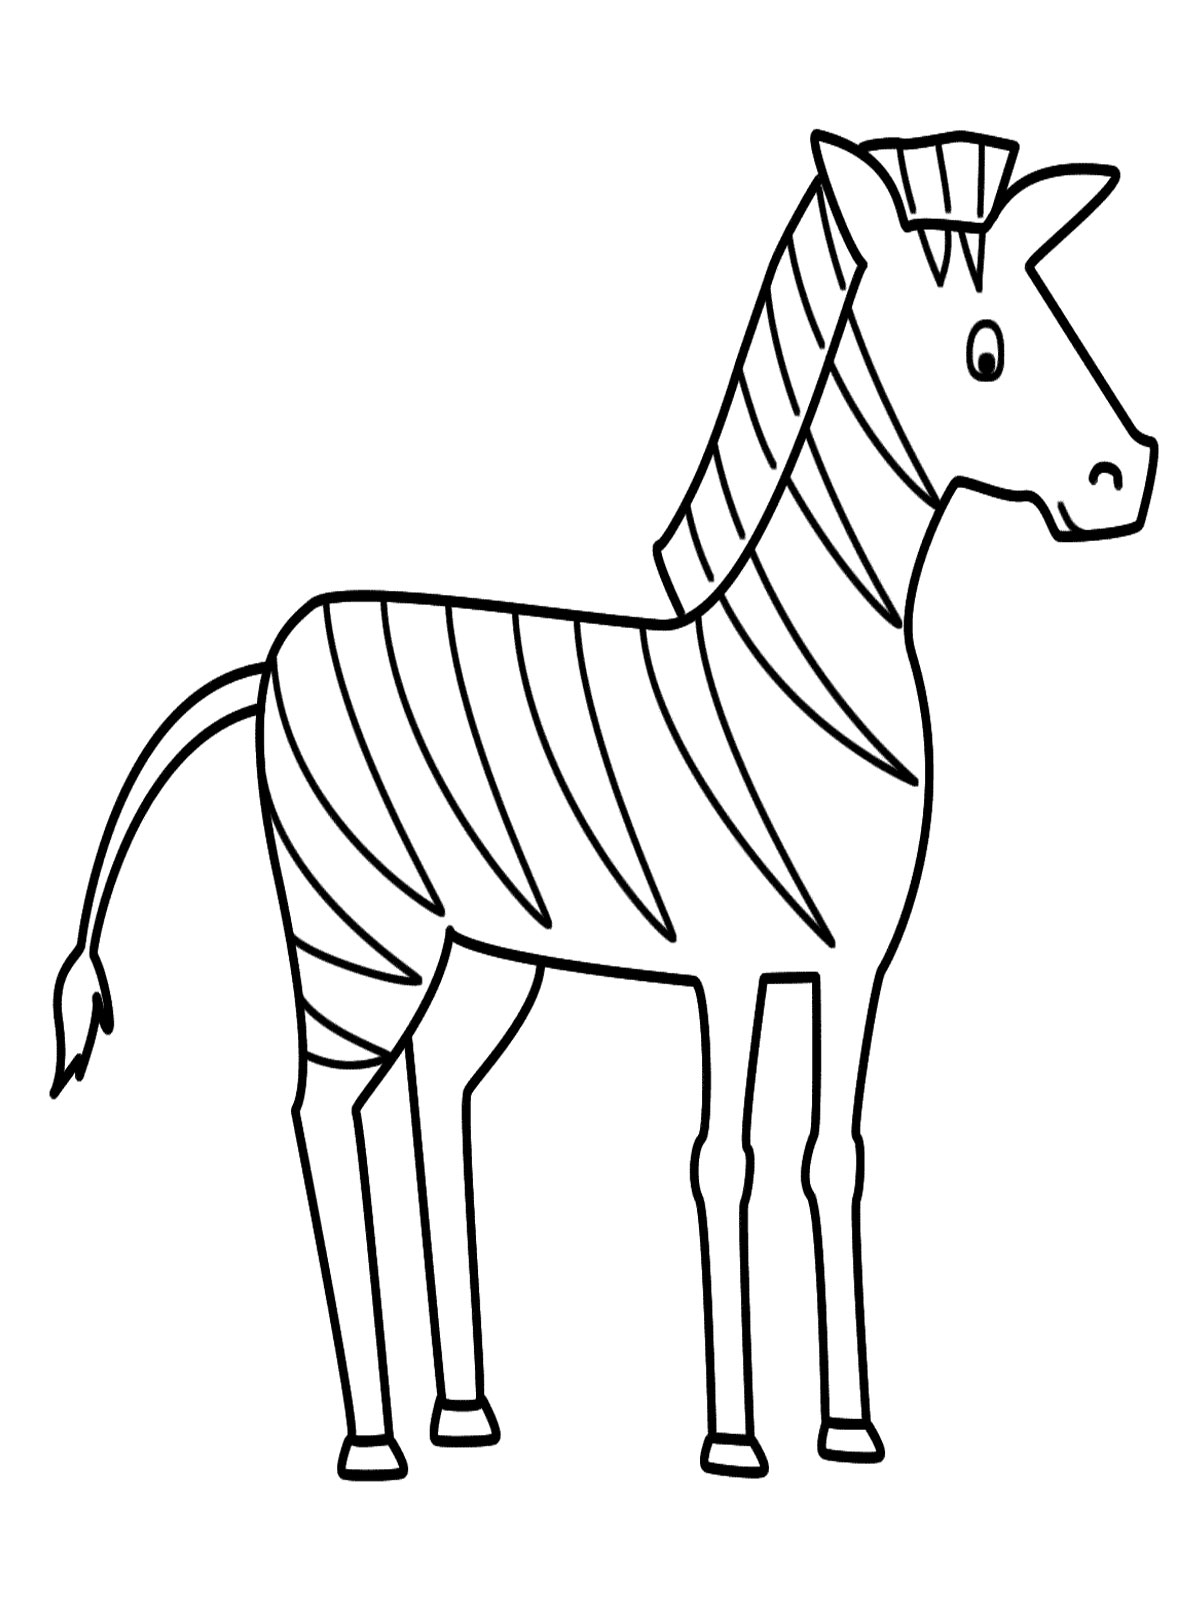 zebra family coloring pages - photo#18